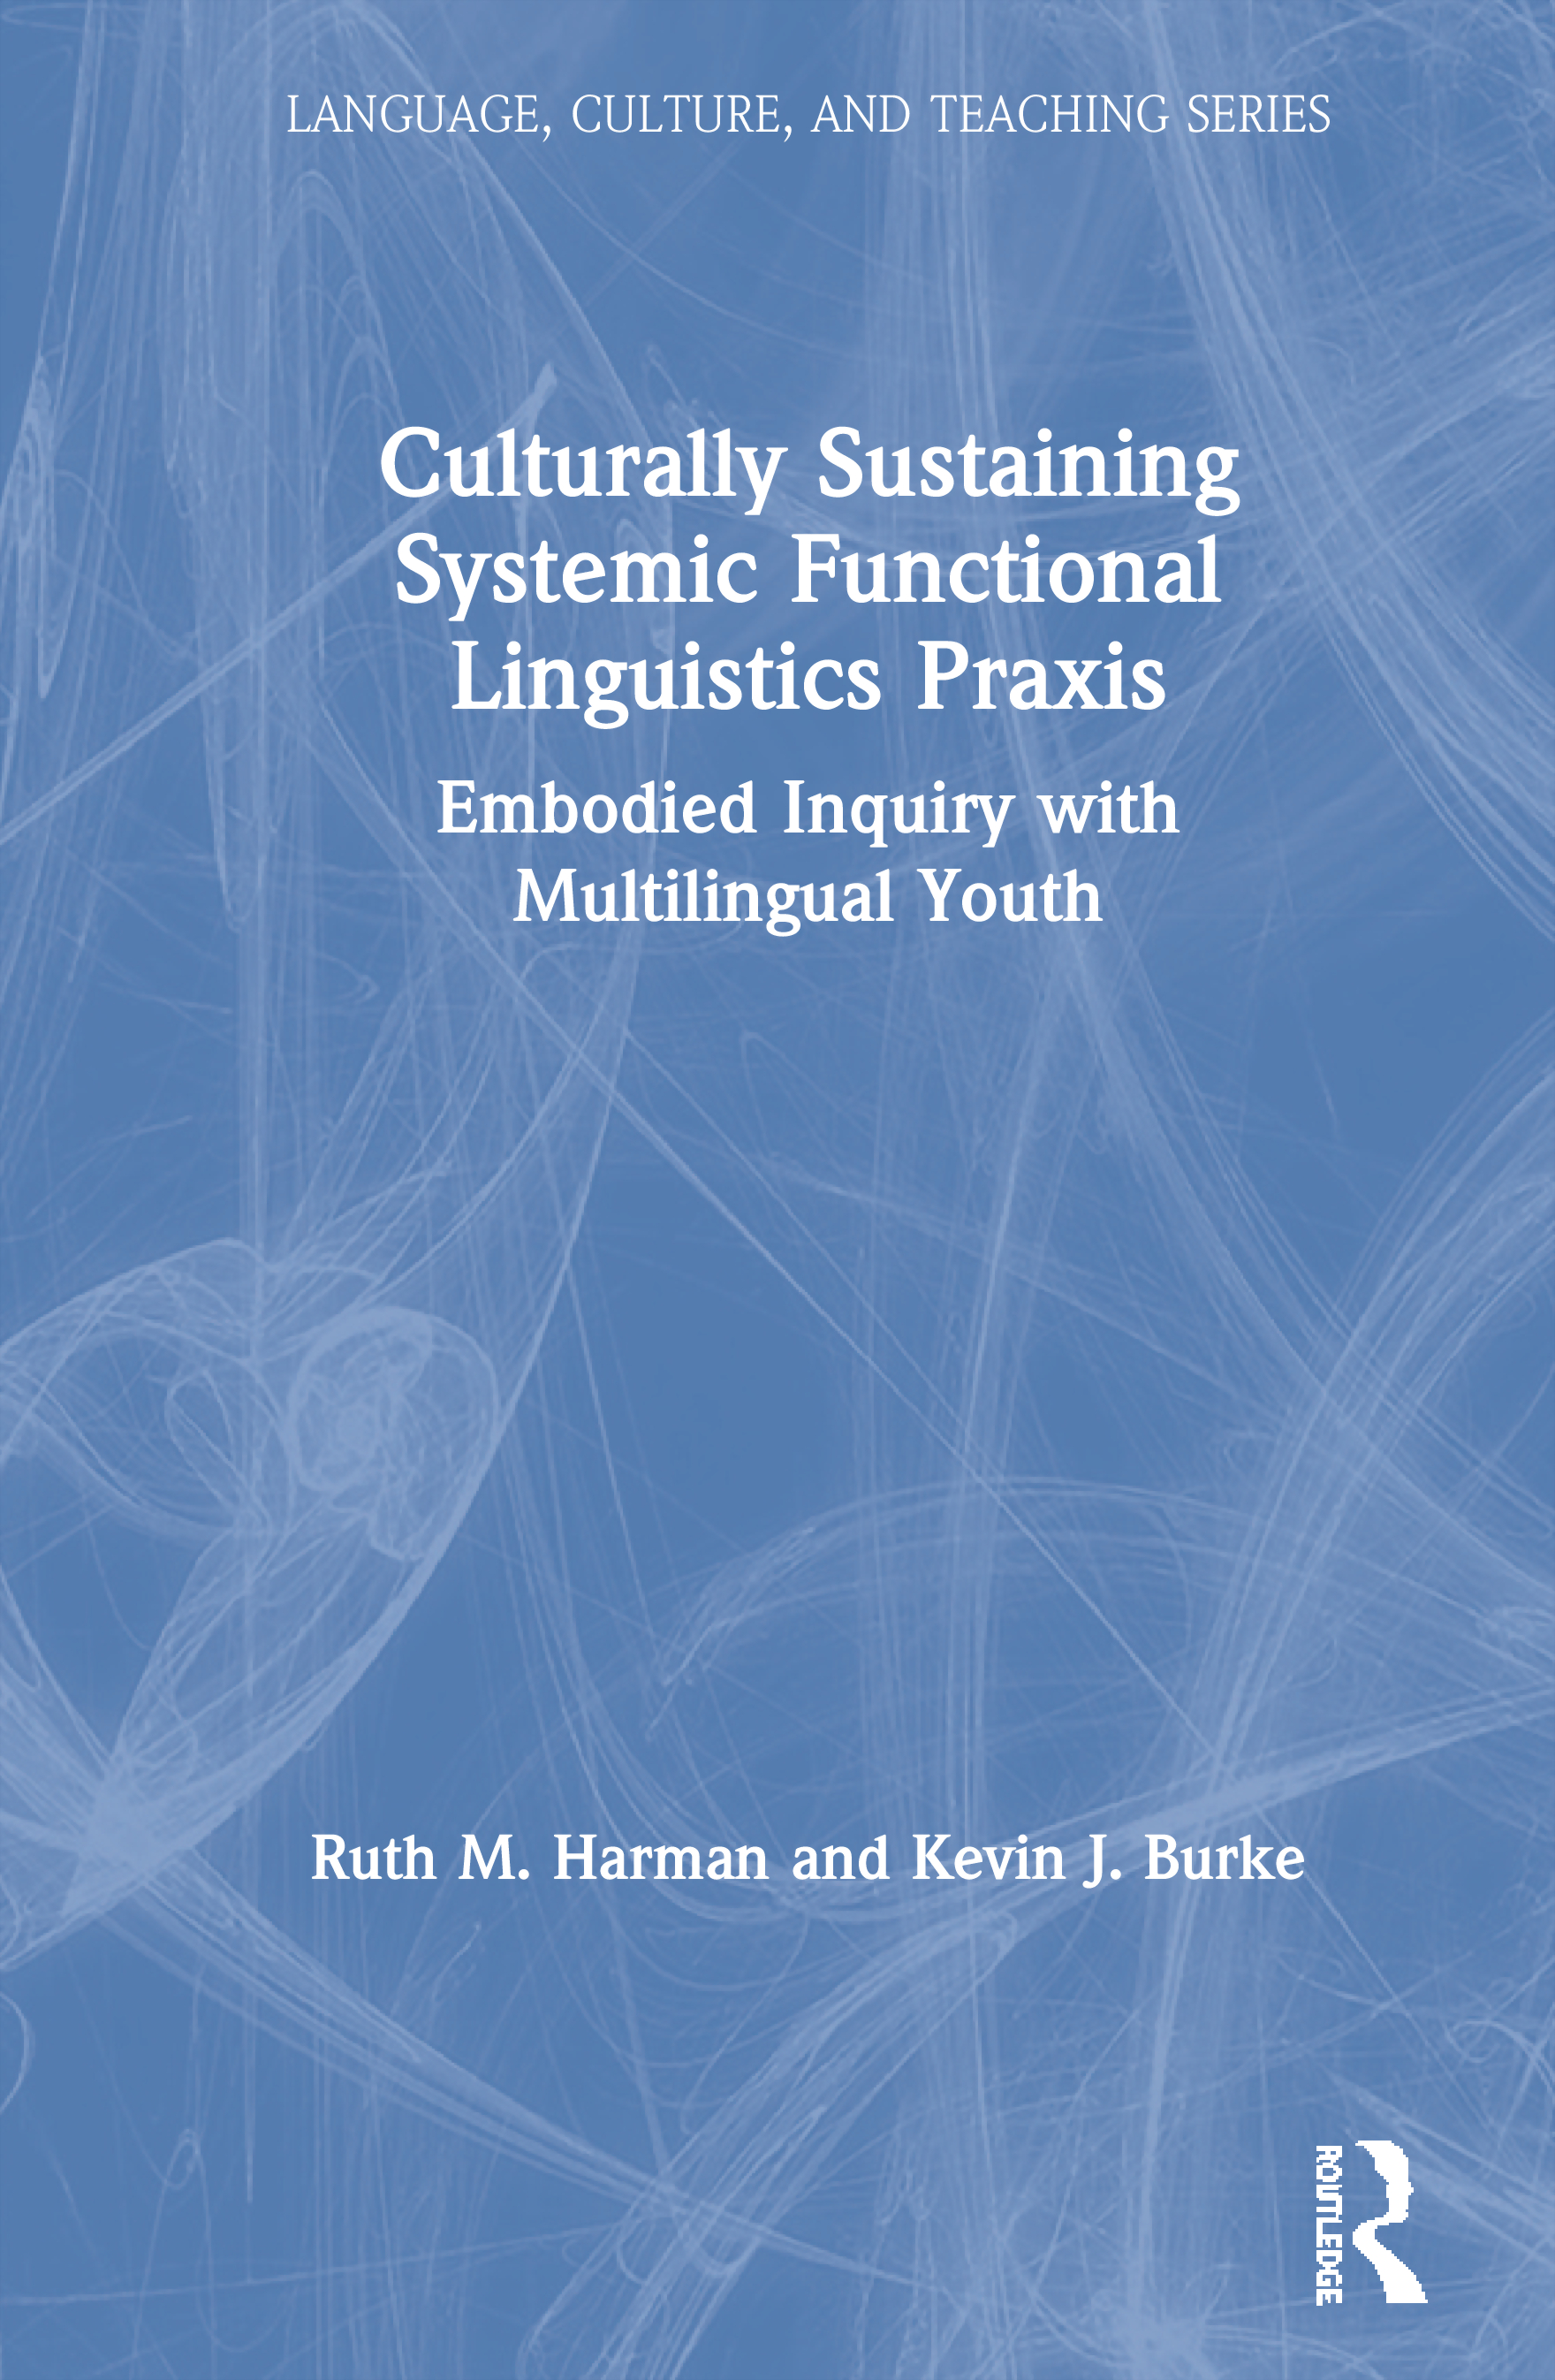 Culturally Sustaining Systemic Functional Linguistics Praxis: Embodied Inquiry with Multilingual Youth book cover